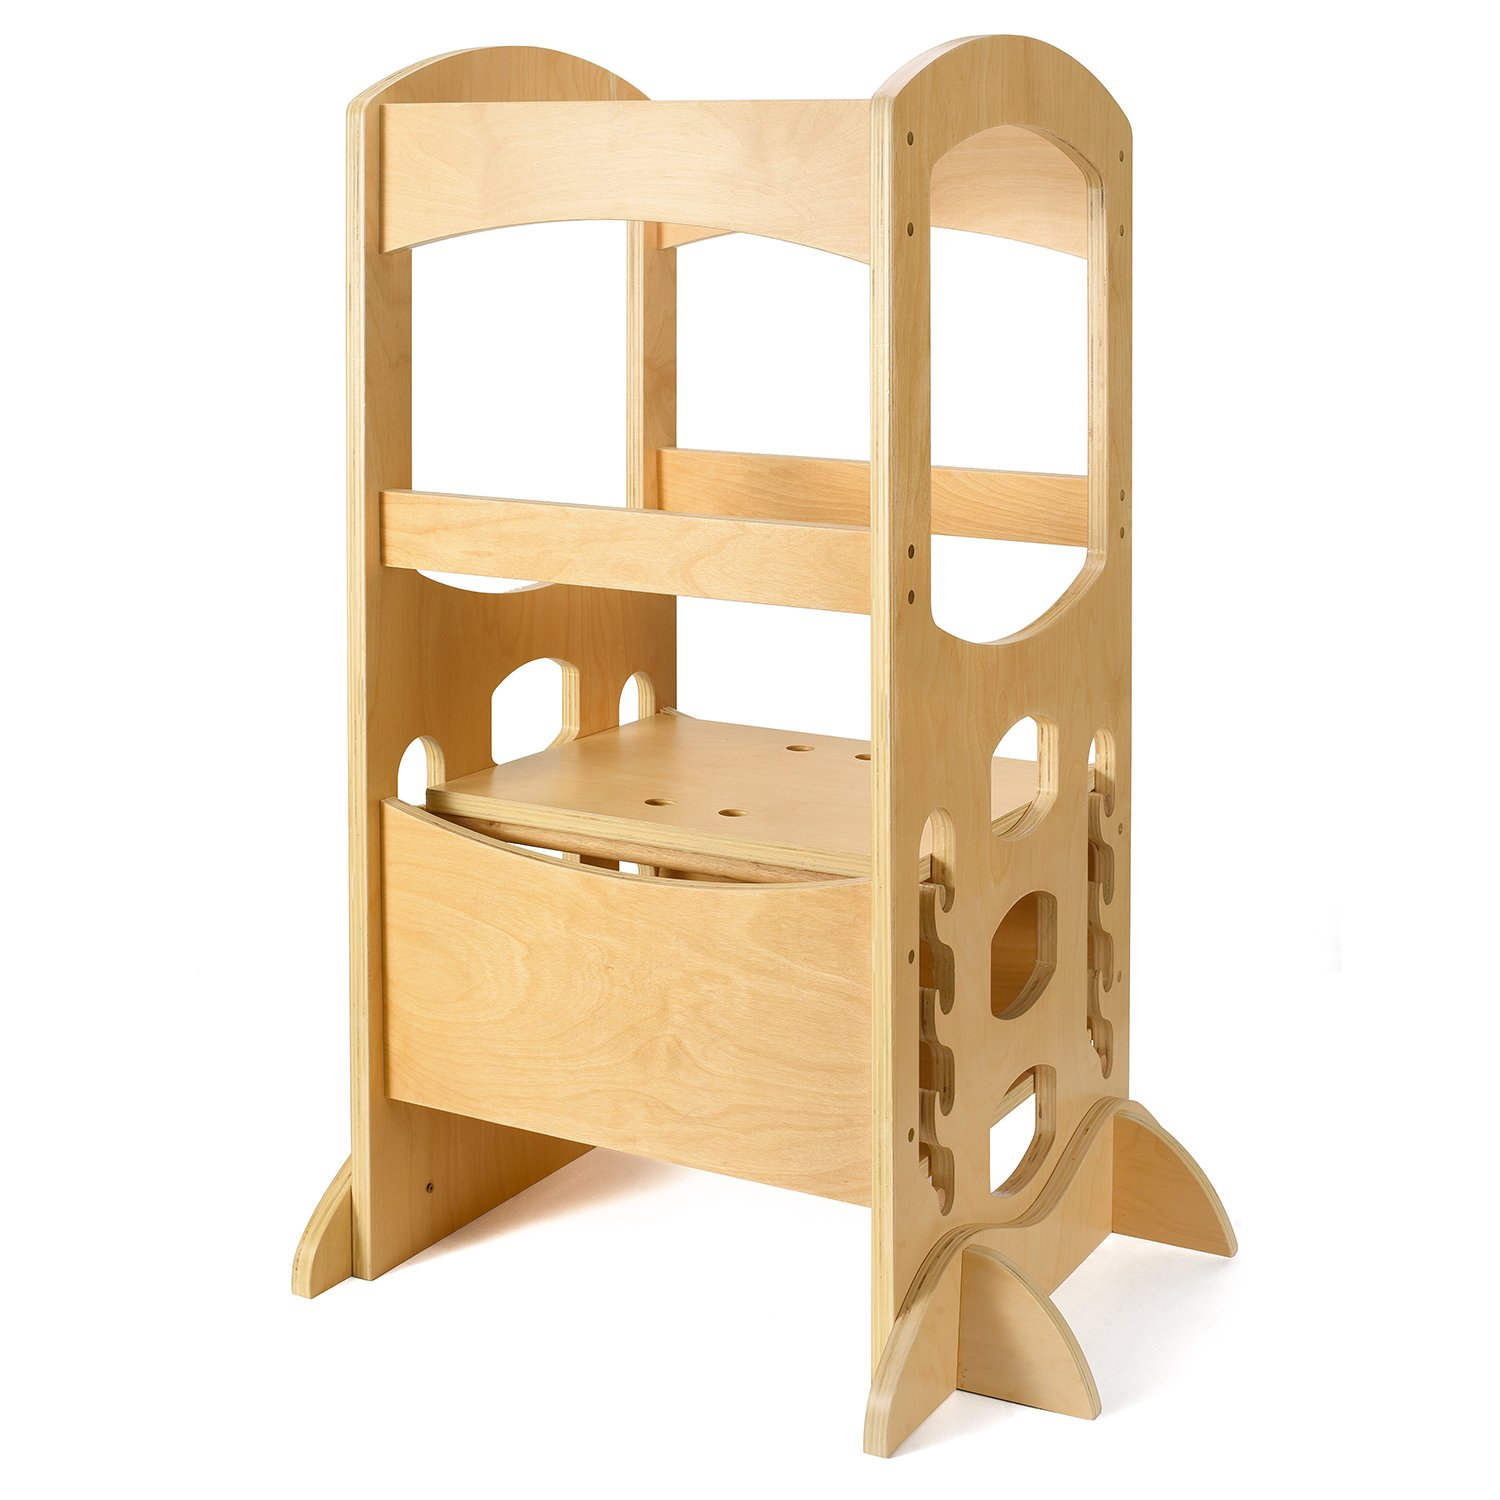 Acko Wooden Kids Kitchen for Toddler&Kid Kitchen Exercising Helper,Holds Up To 220lbs-Natural